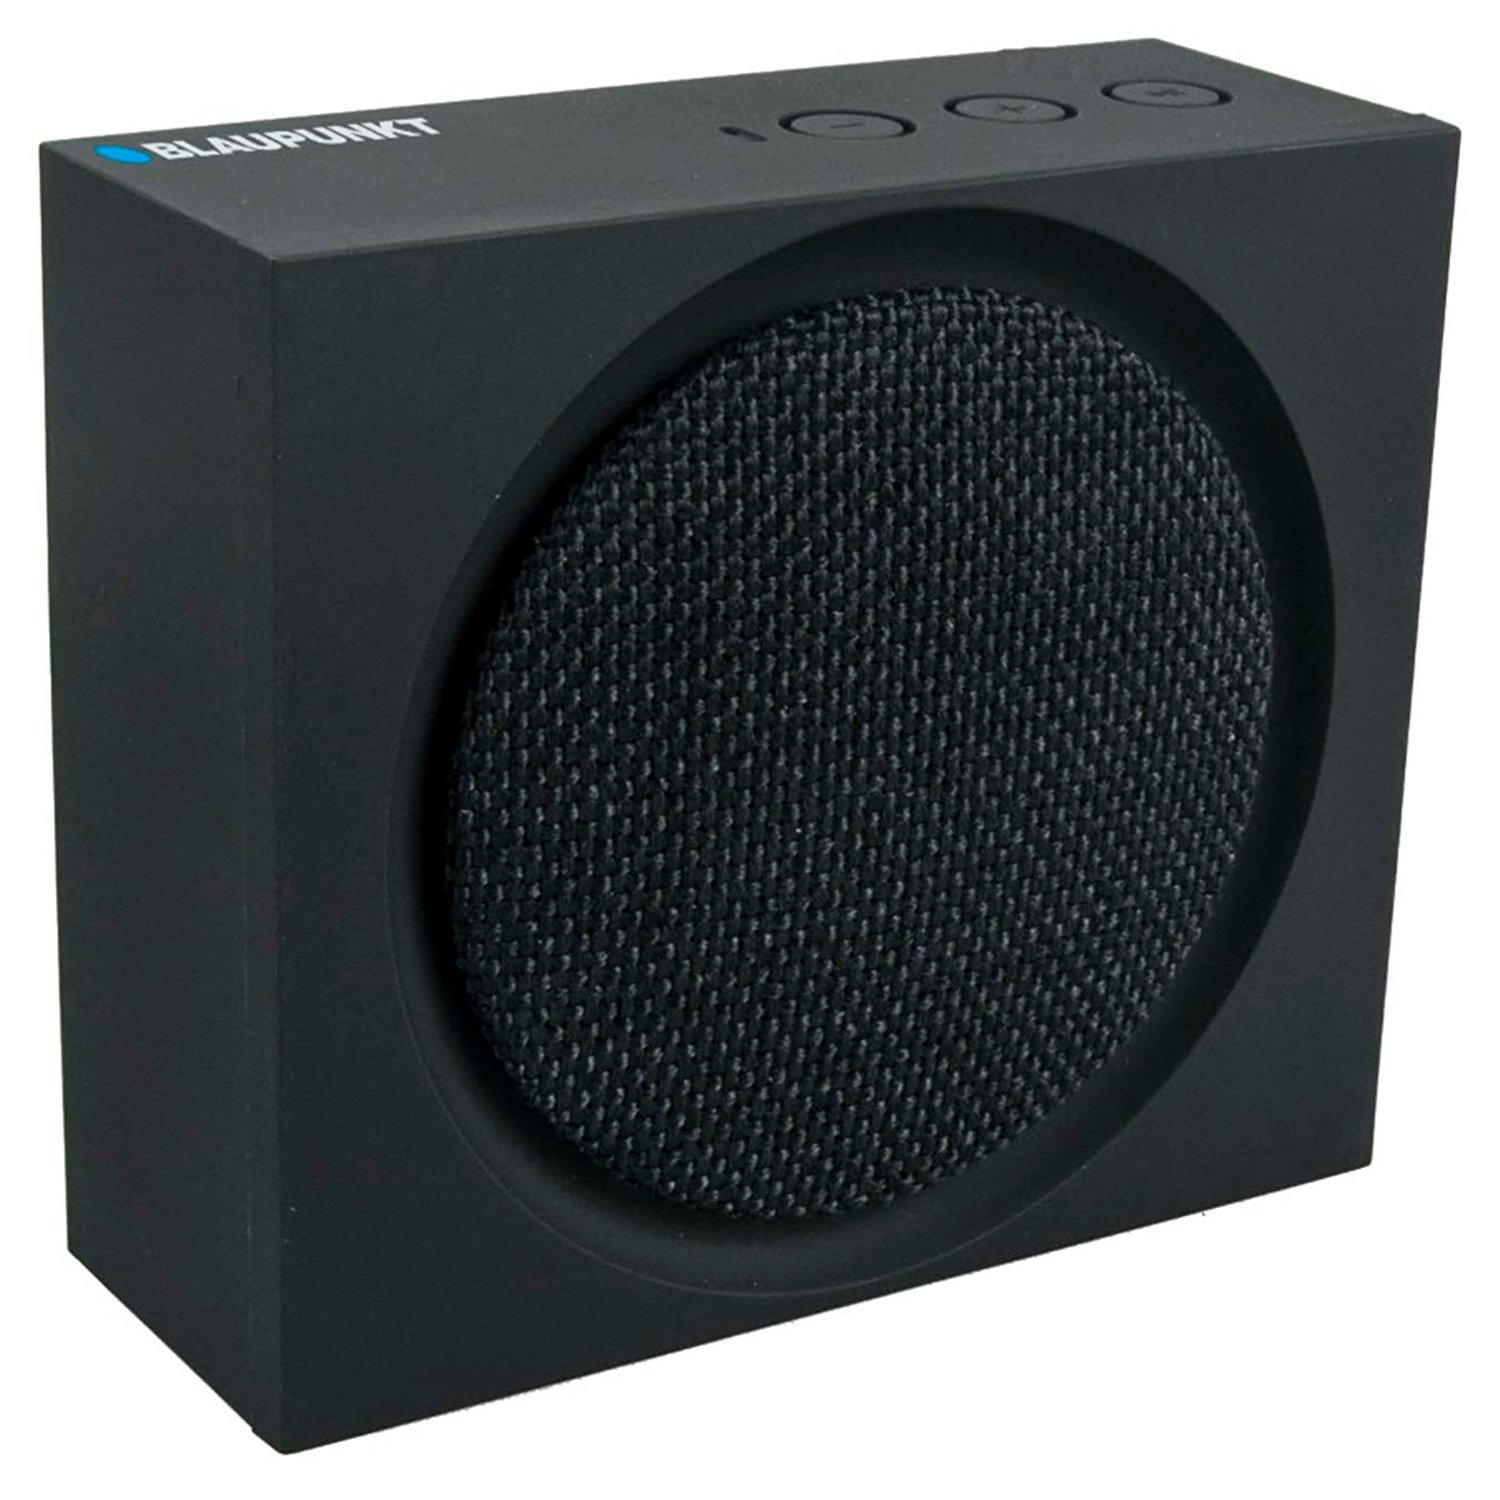 Altavoz inalámbrico portatil de Blaupunkt, disponible en diferentes colores (BT03BK negro)